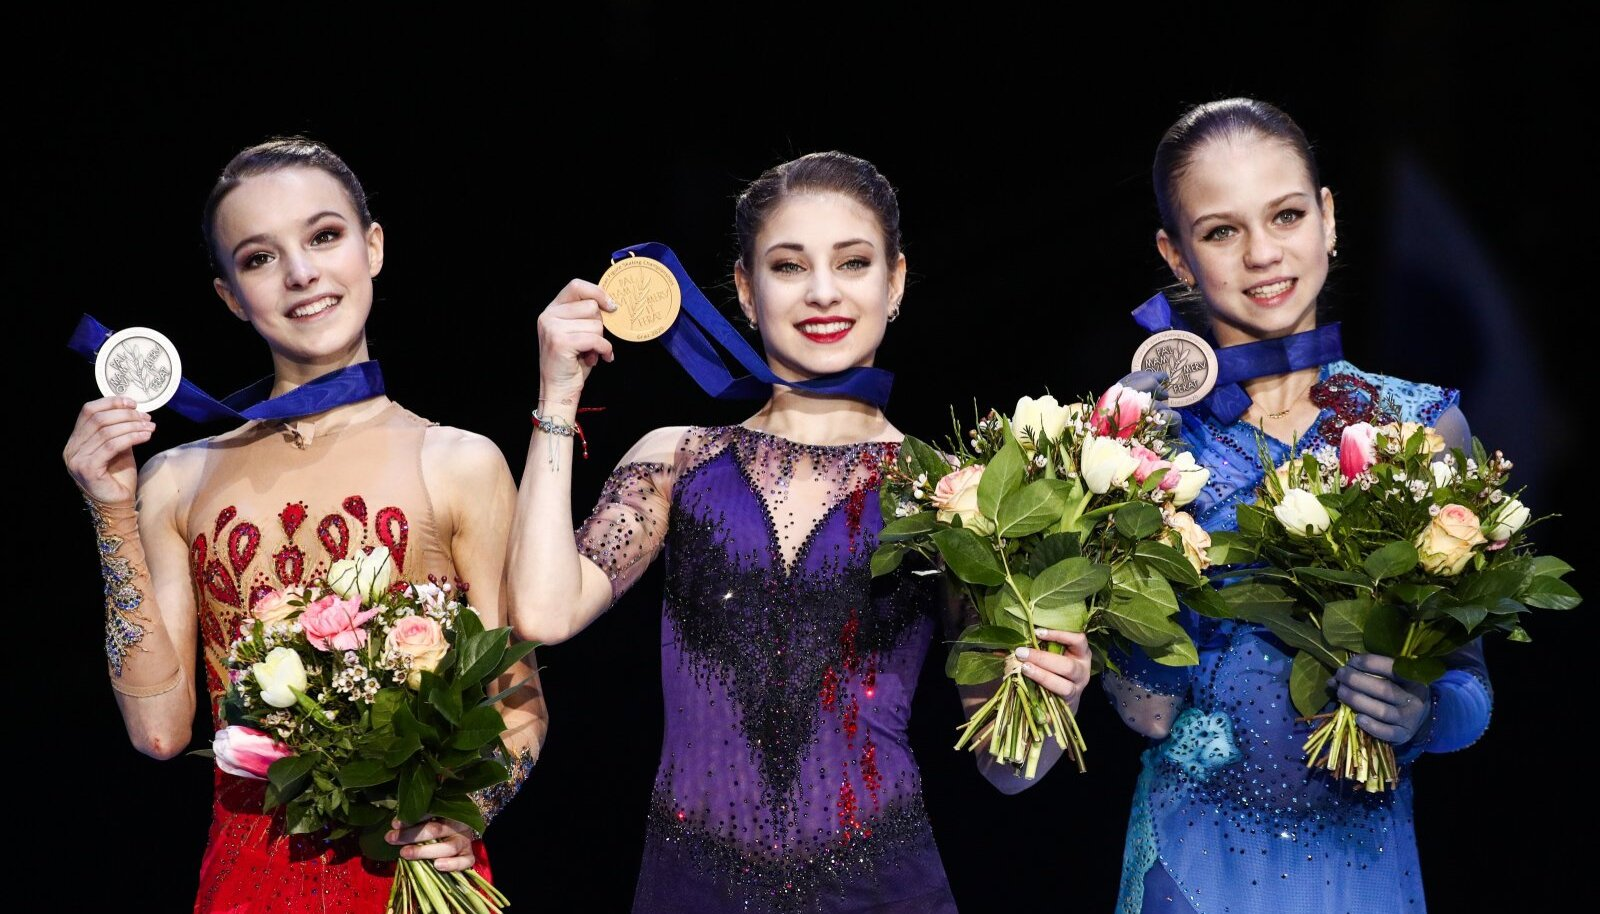 2020 European Figure Skating Championships: victory ceremony